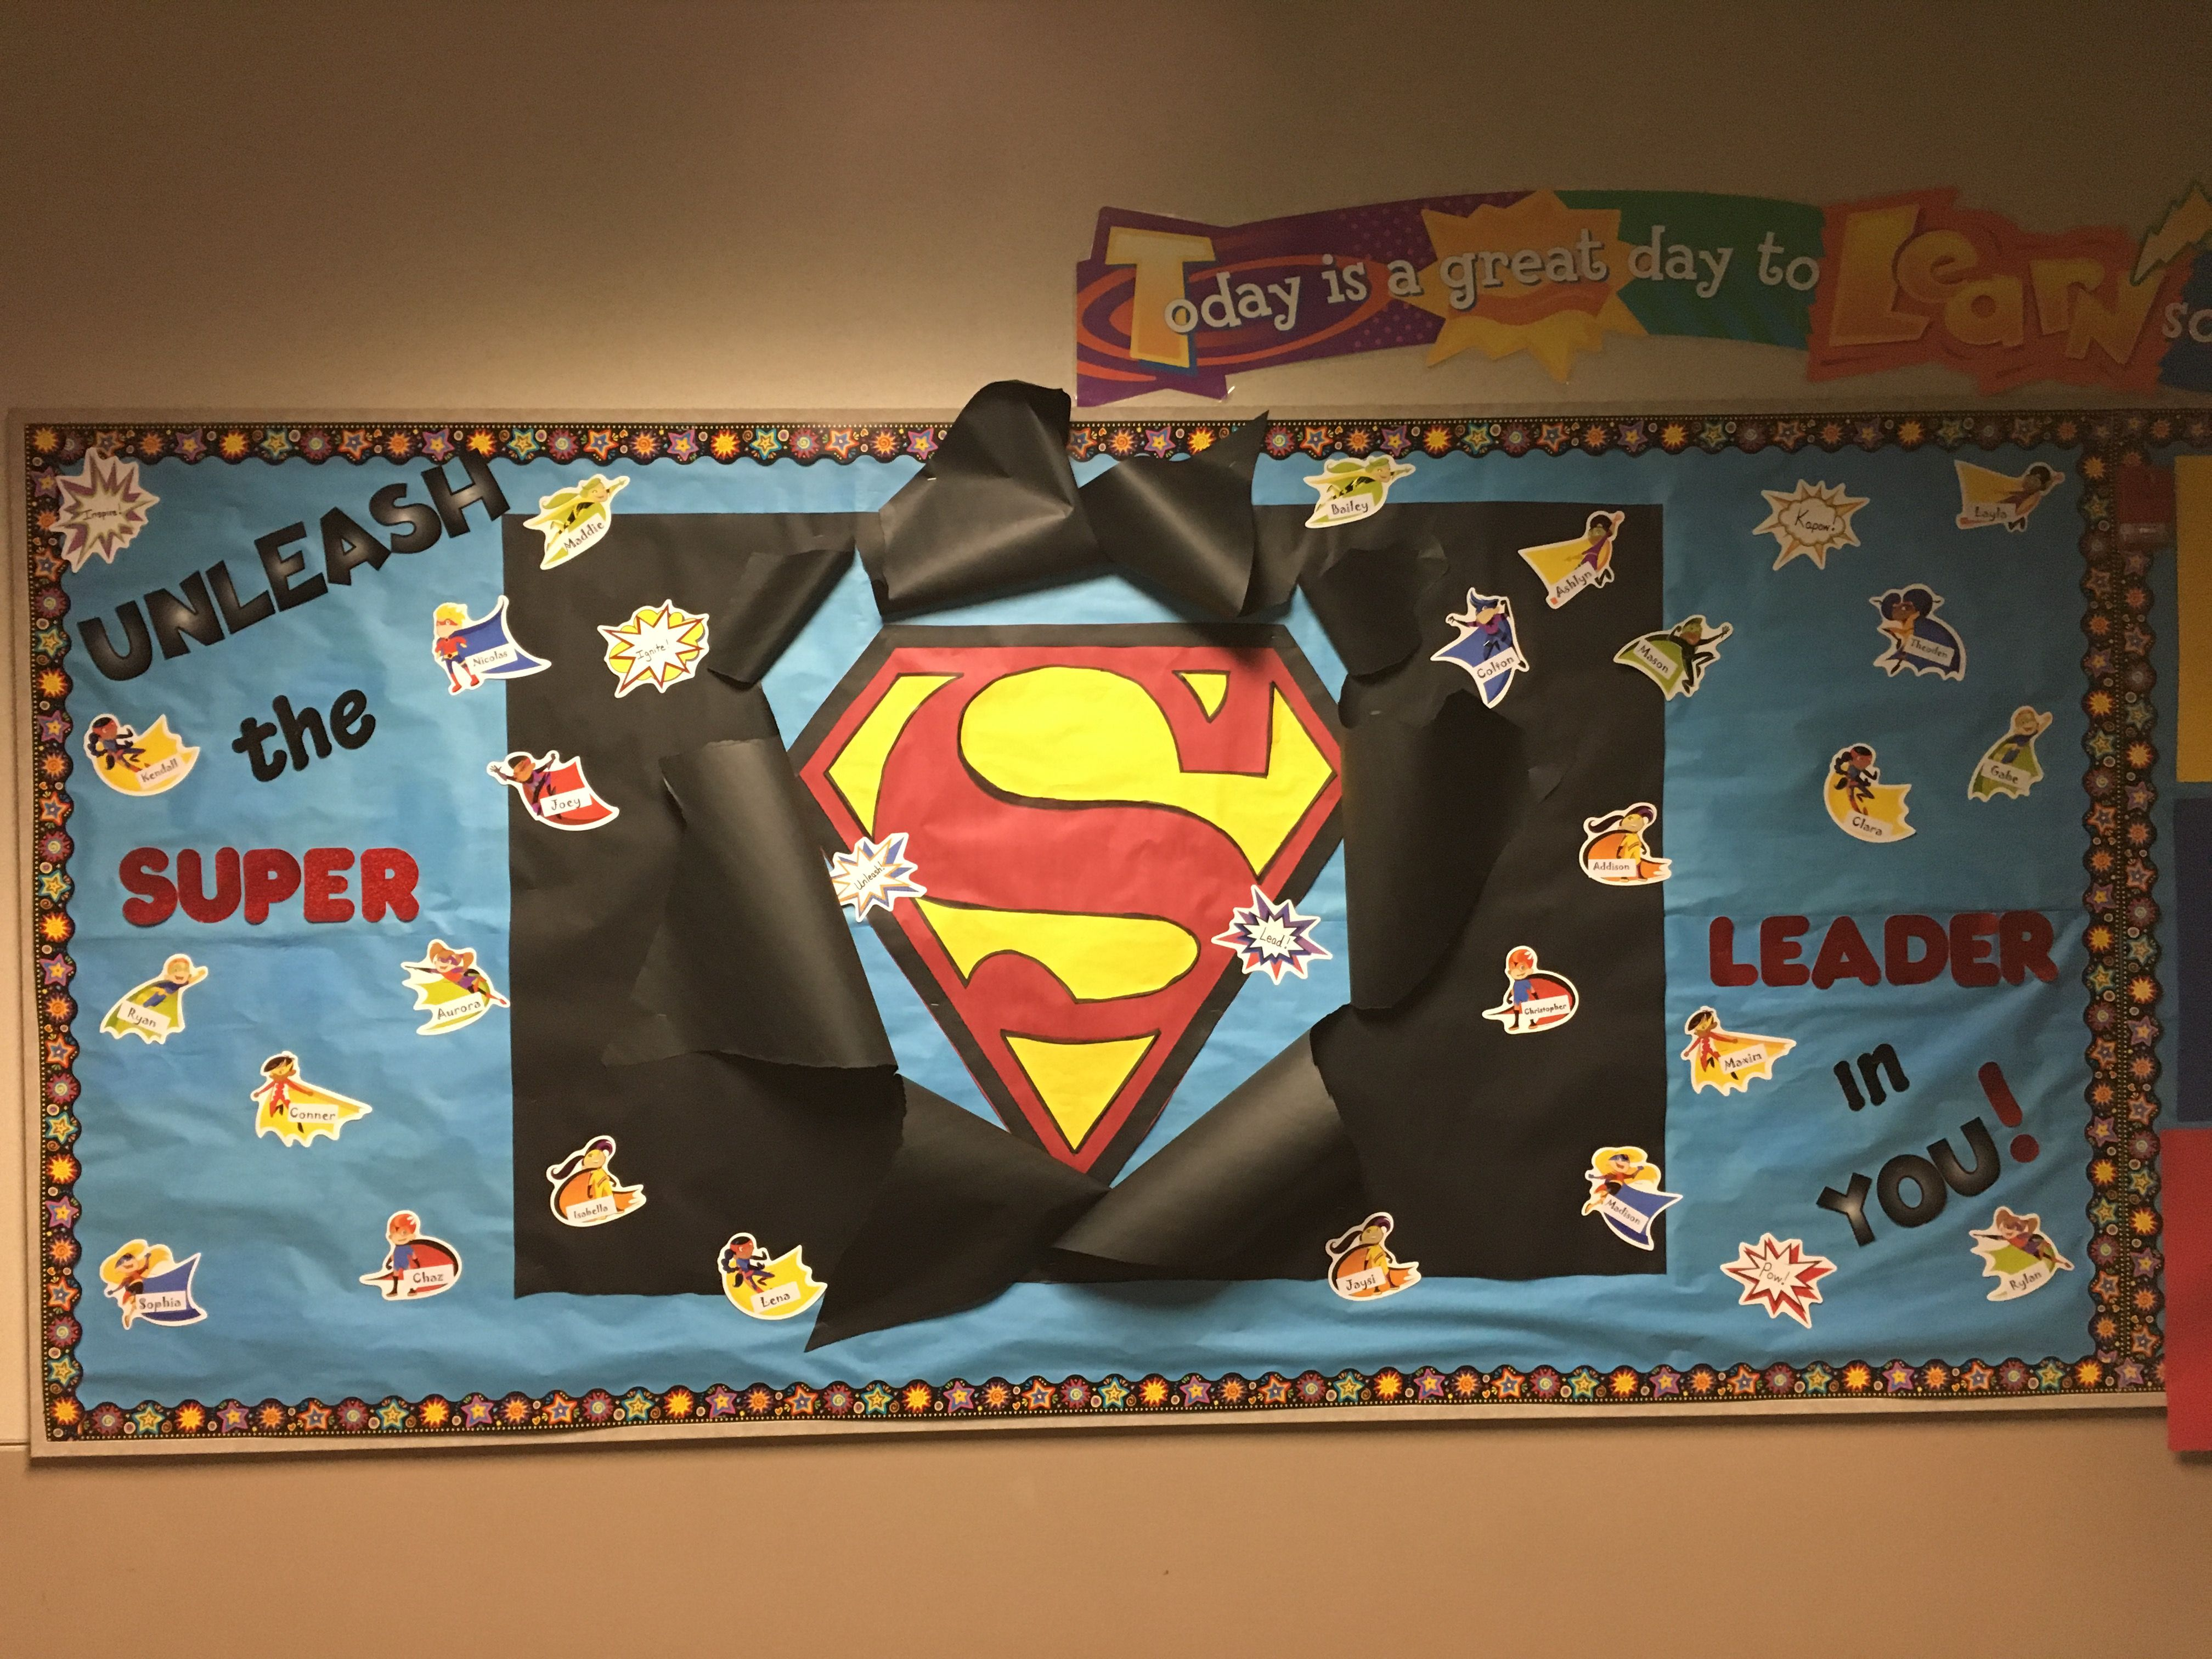 Exceptional Superhero Bulletin Board / Leader In Me